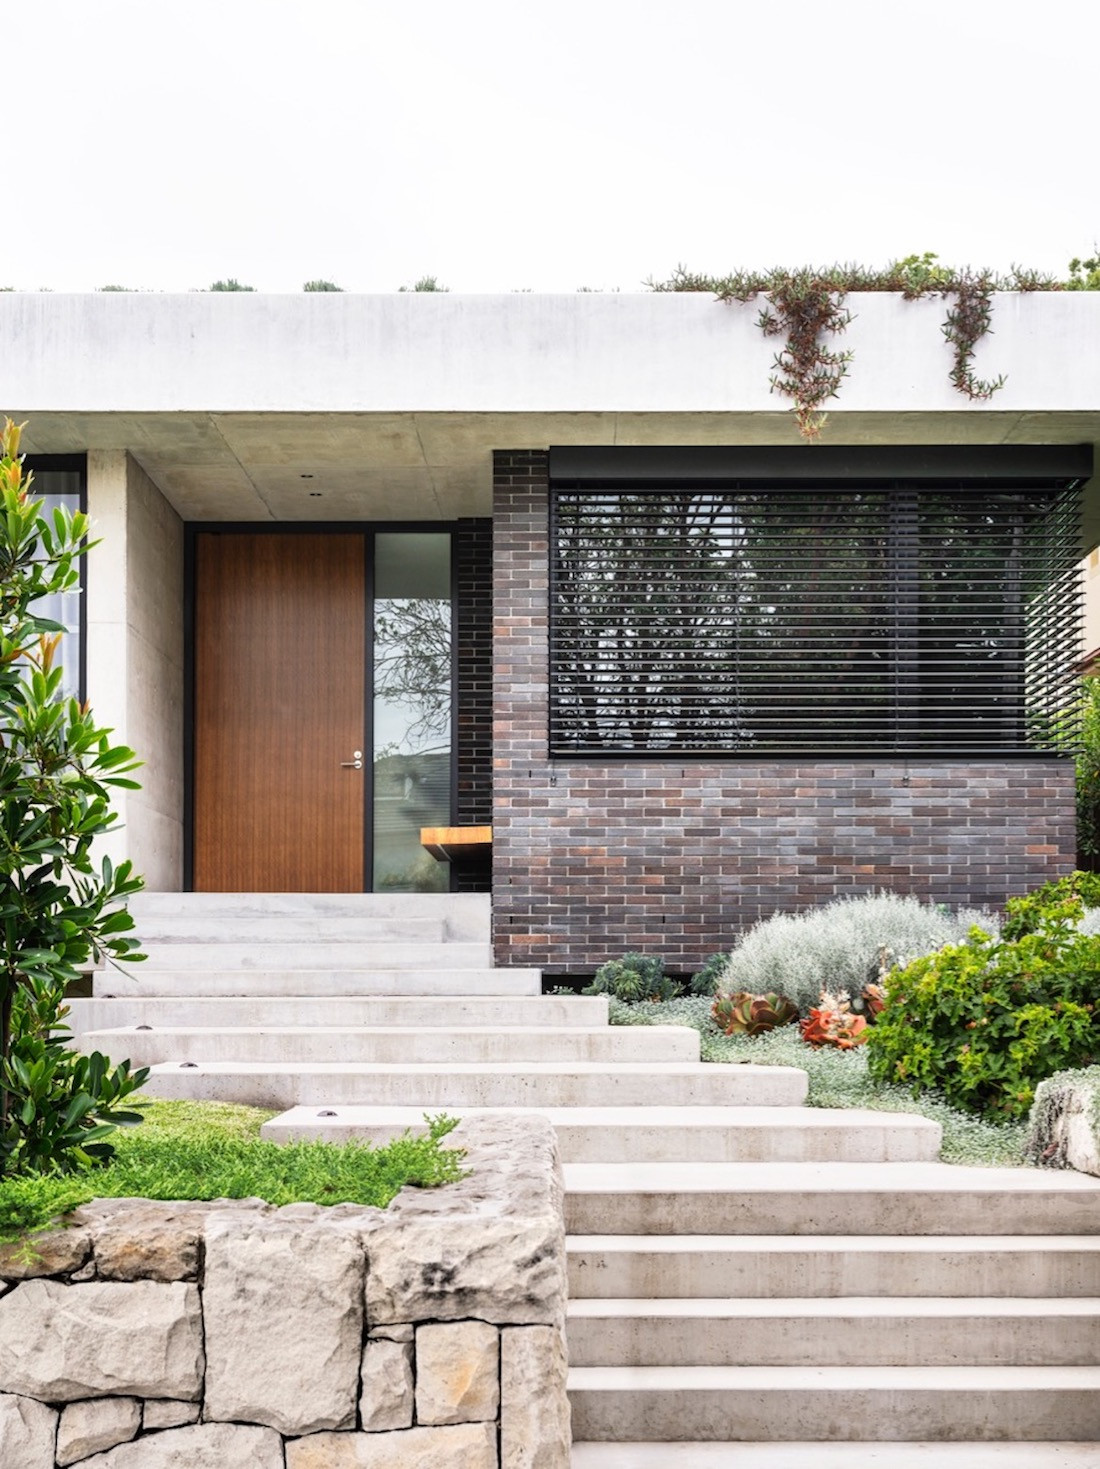 A stone pathway leads up to the home's wooden front door.